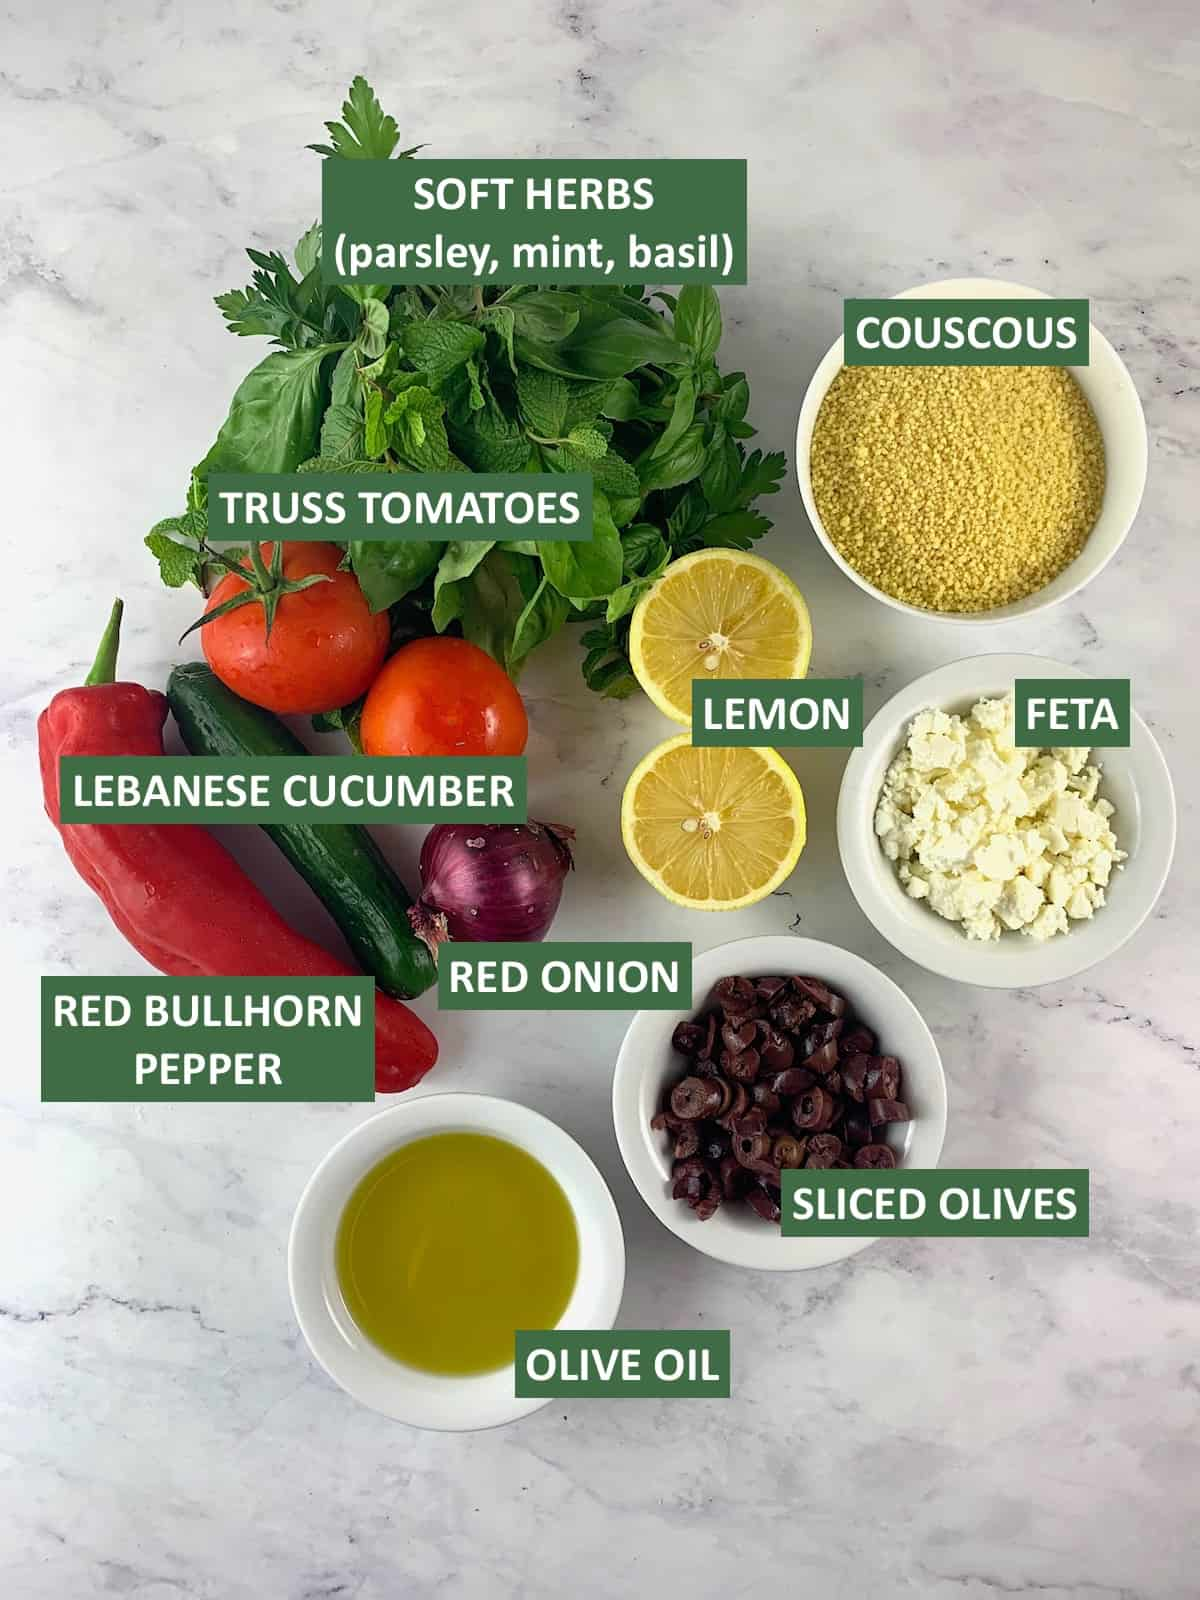 LABELLED INGREDIENTS FOR MEDITRRANEAN COUSCOUS SALAD